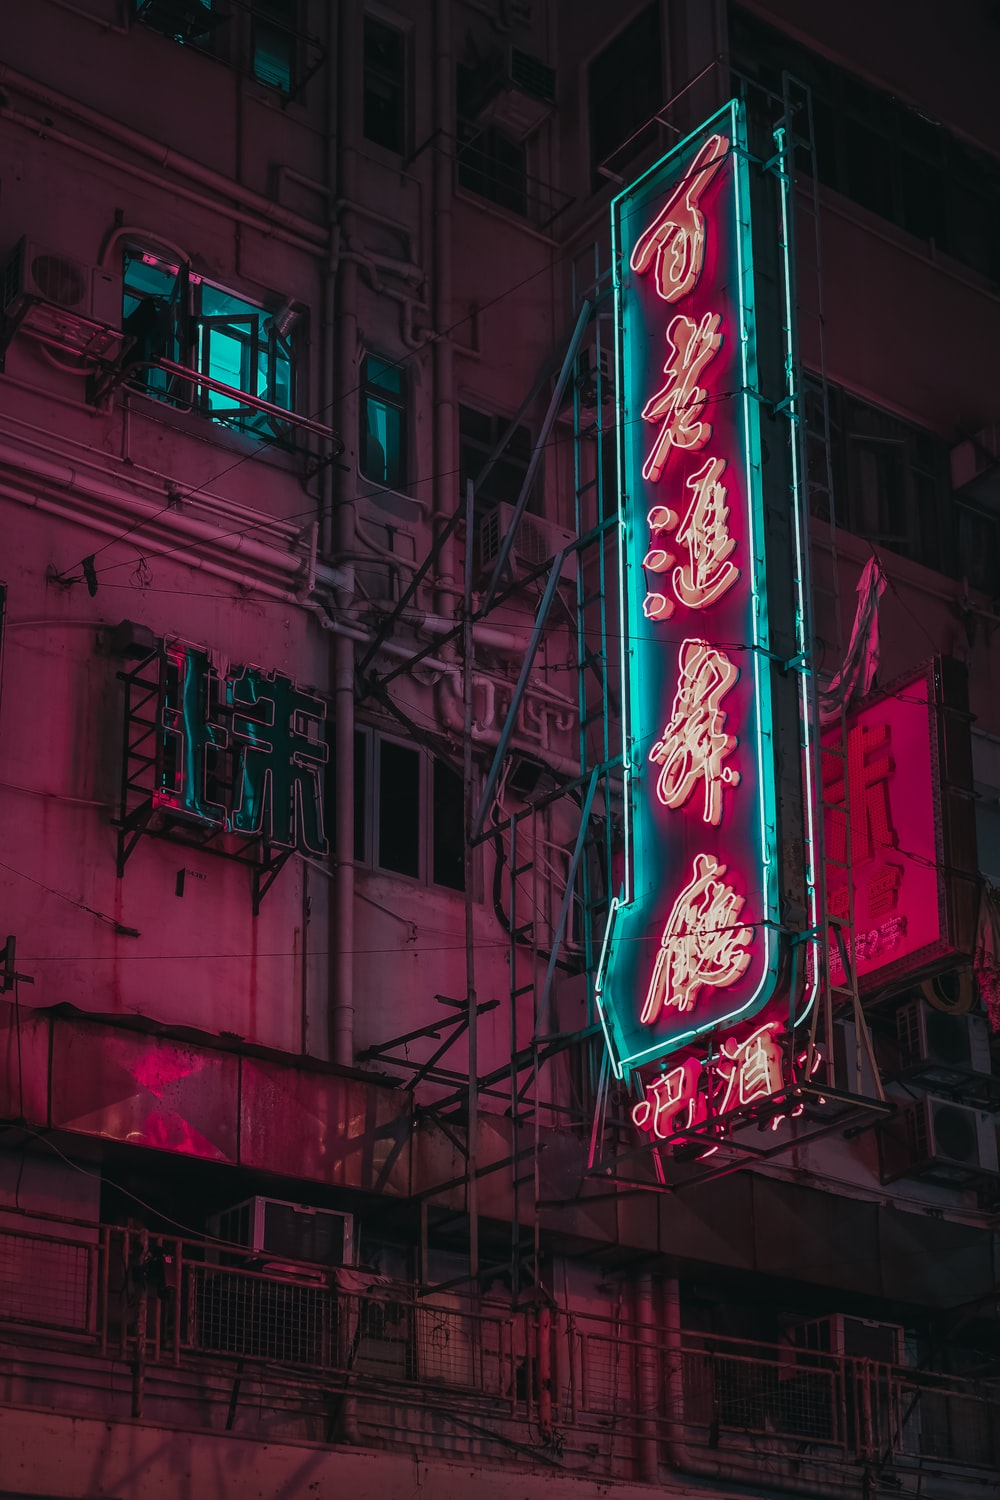 turned-on kanji script neon signage at the building